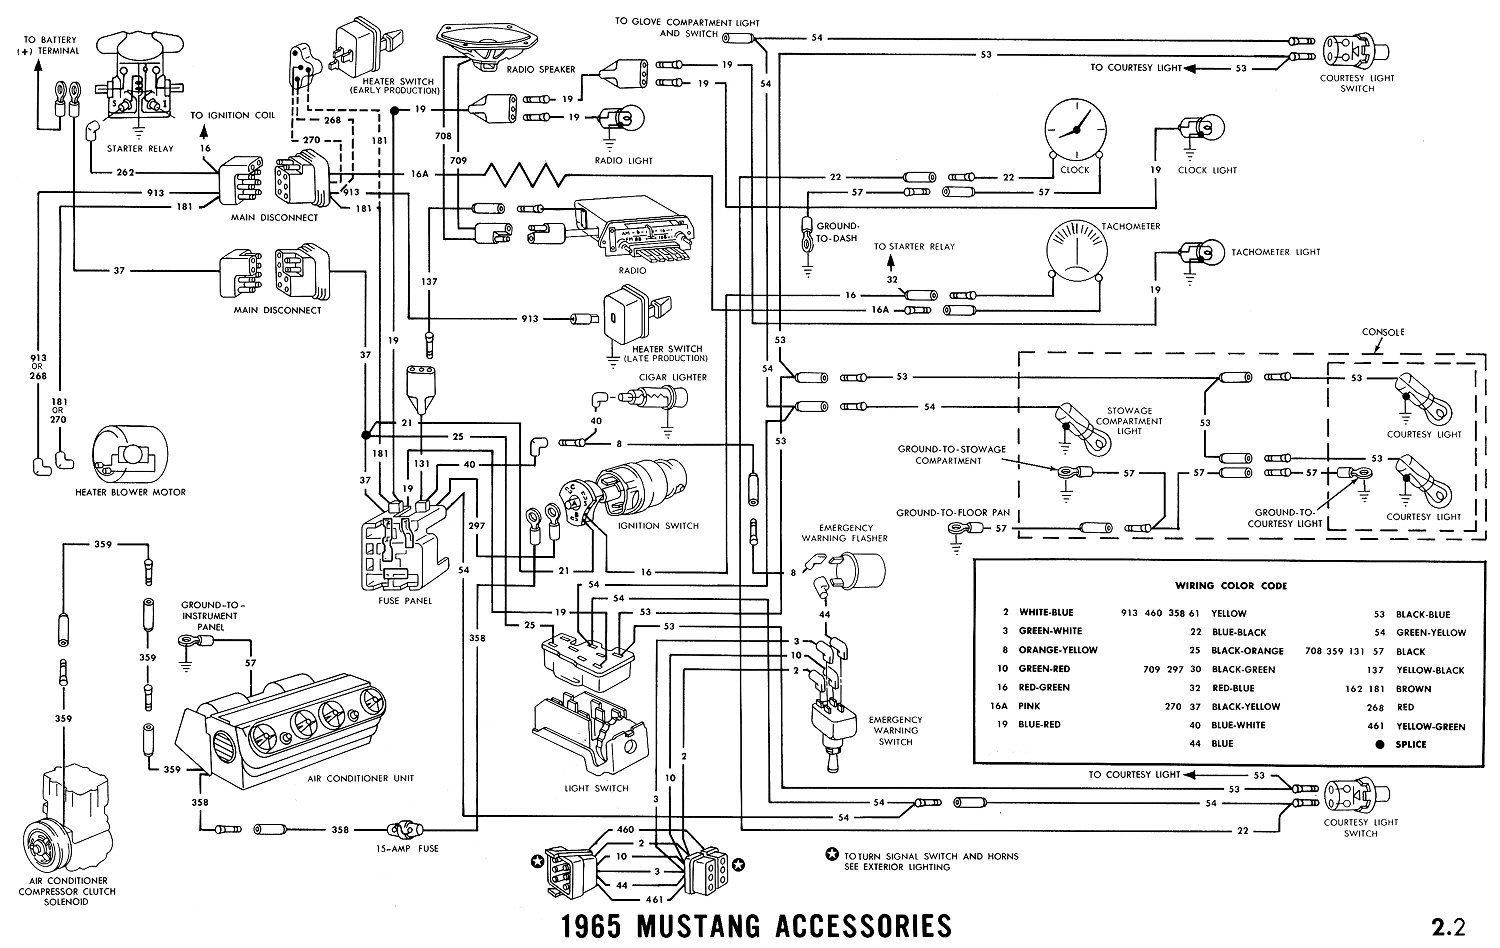 hight resolution of 1965 mustang wiring colors wiring diagram val 1965 mustang wiring schematic free wiring diagrams 1965 mustang